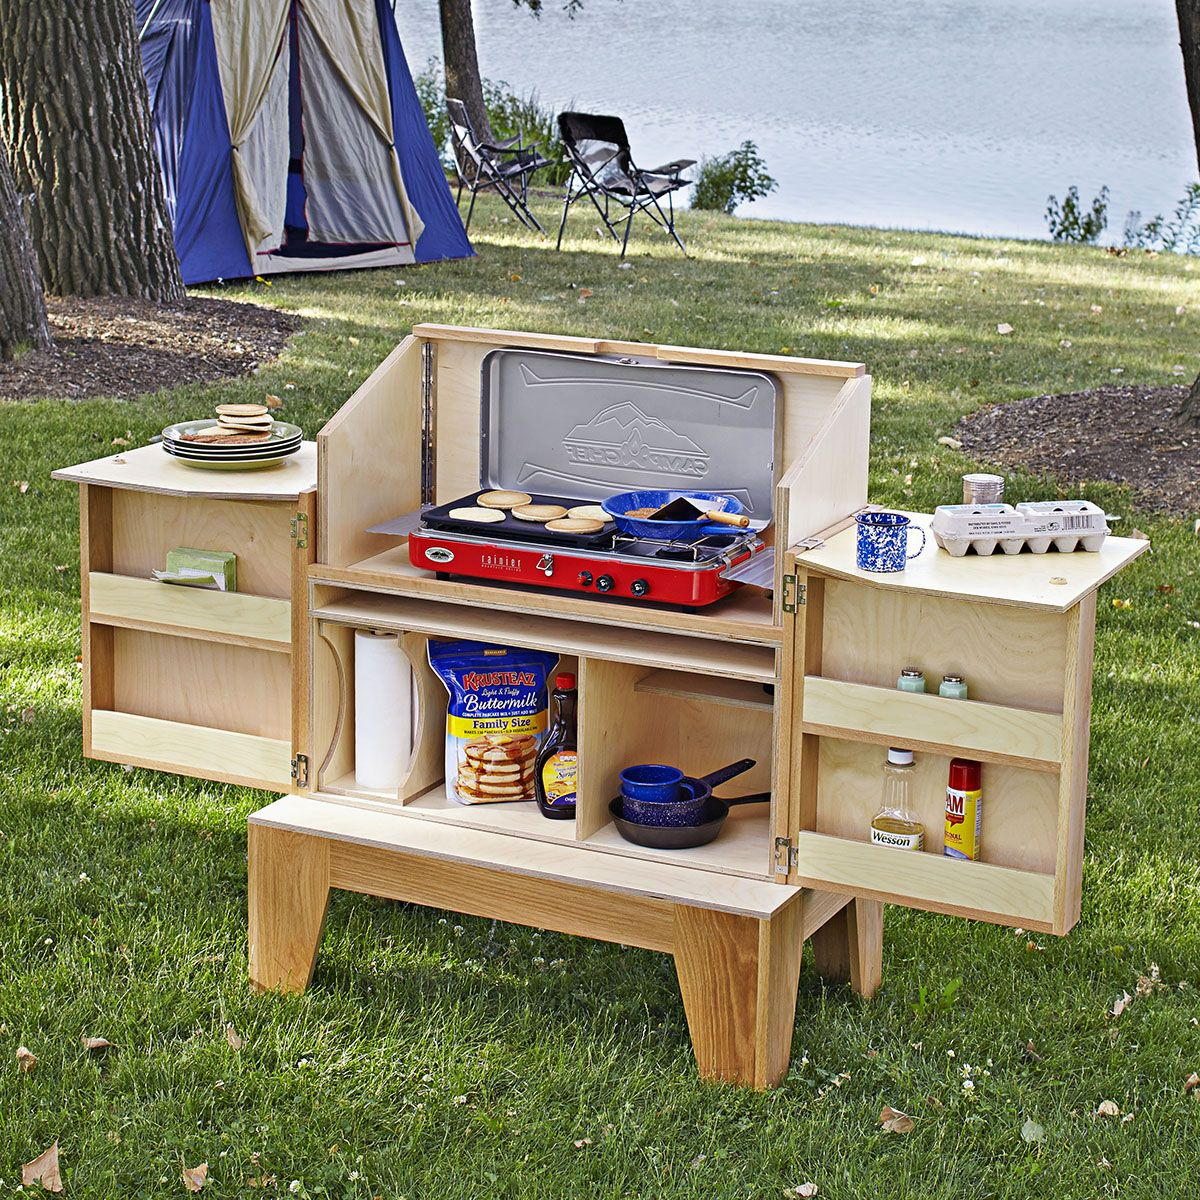 Outdoor Kitchen Ideas For Camping: Camp Kitchen Woodworking Plan. Stash All Your Campground